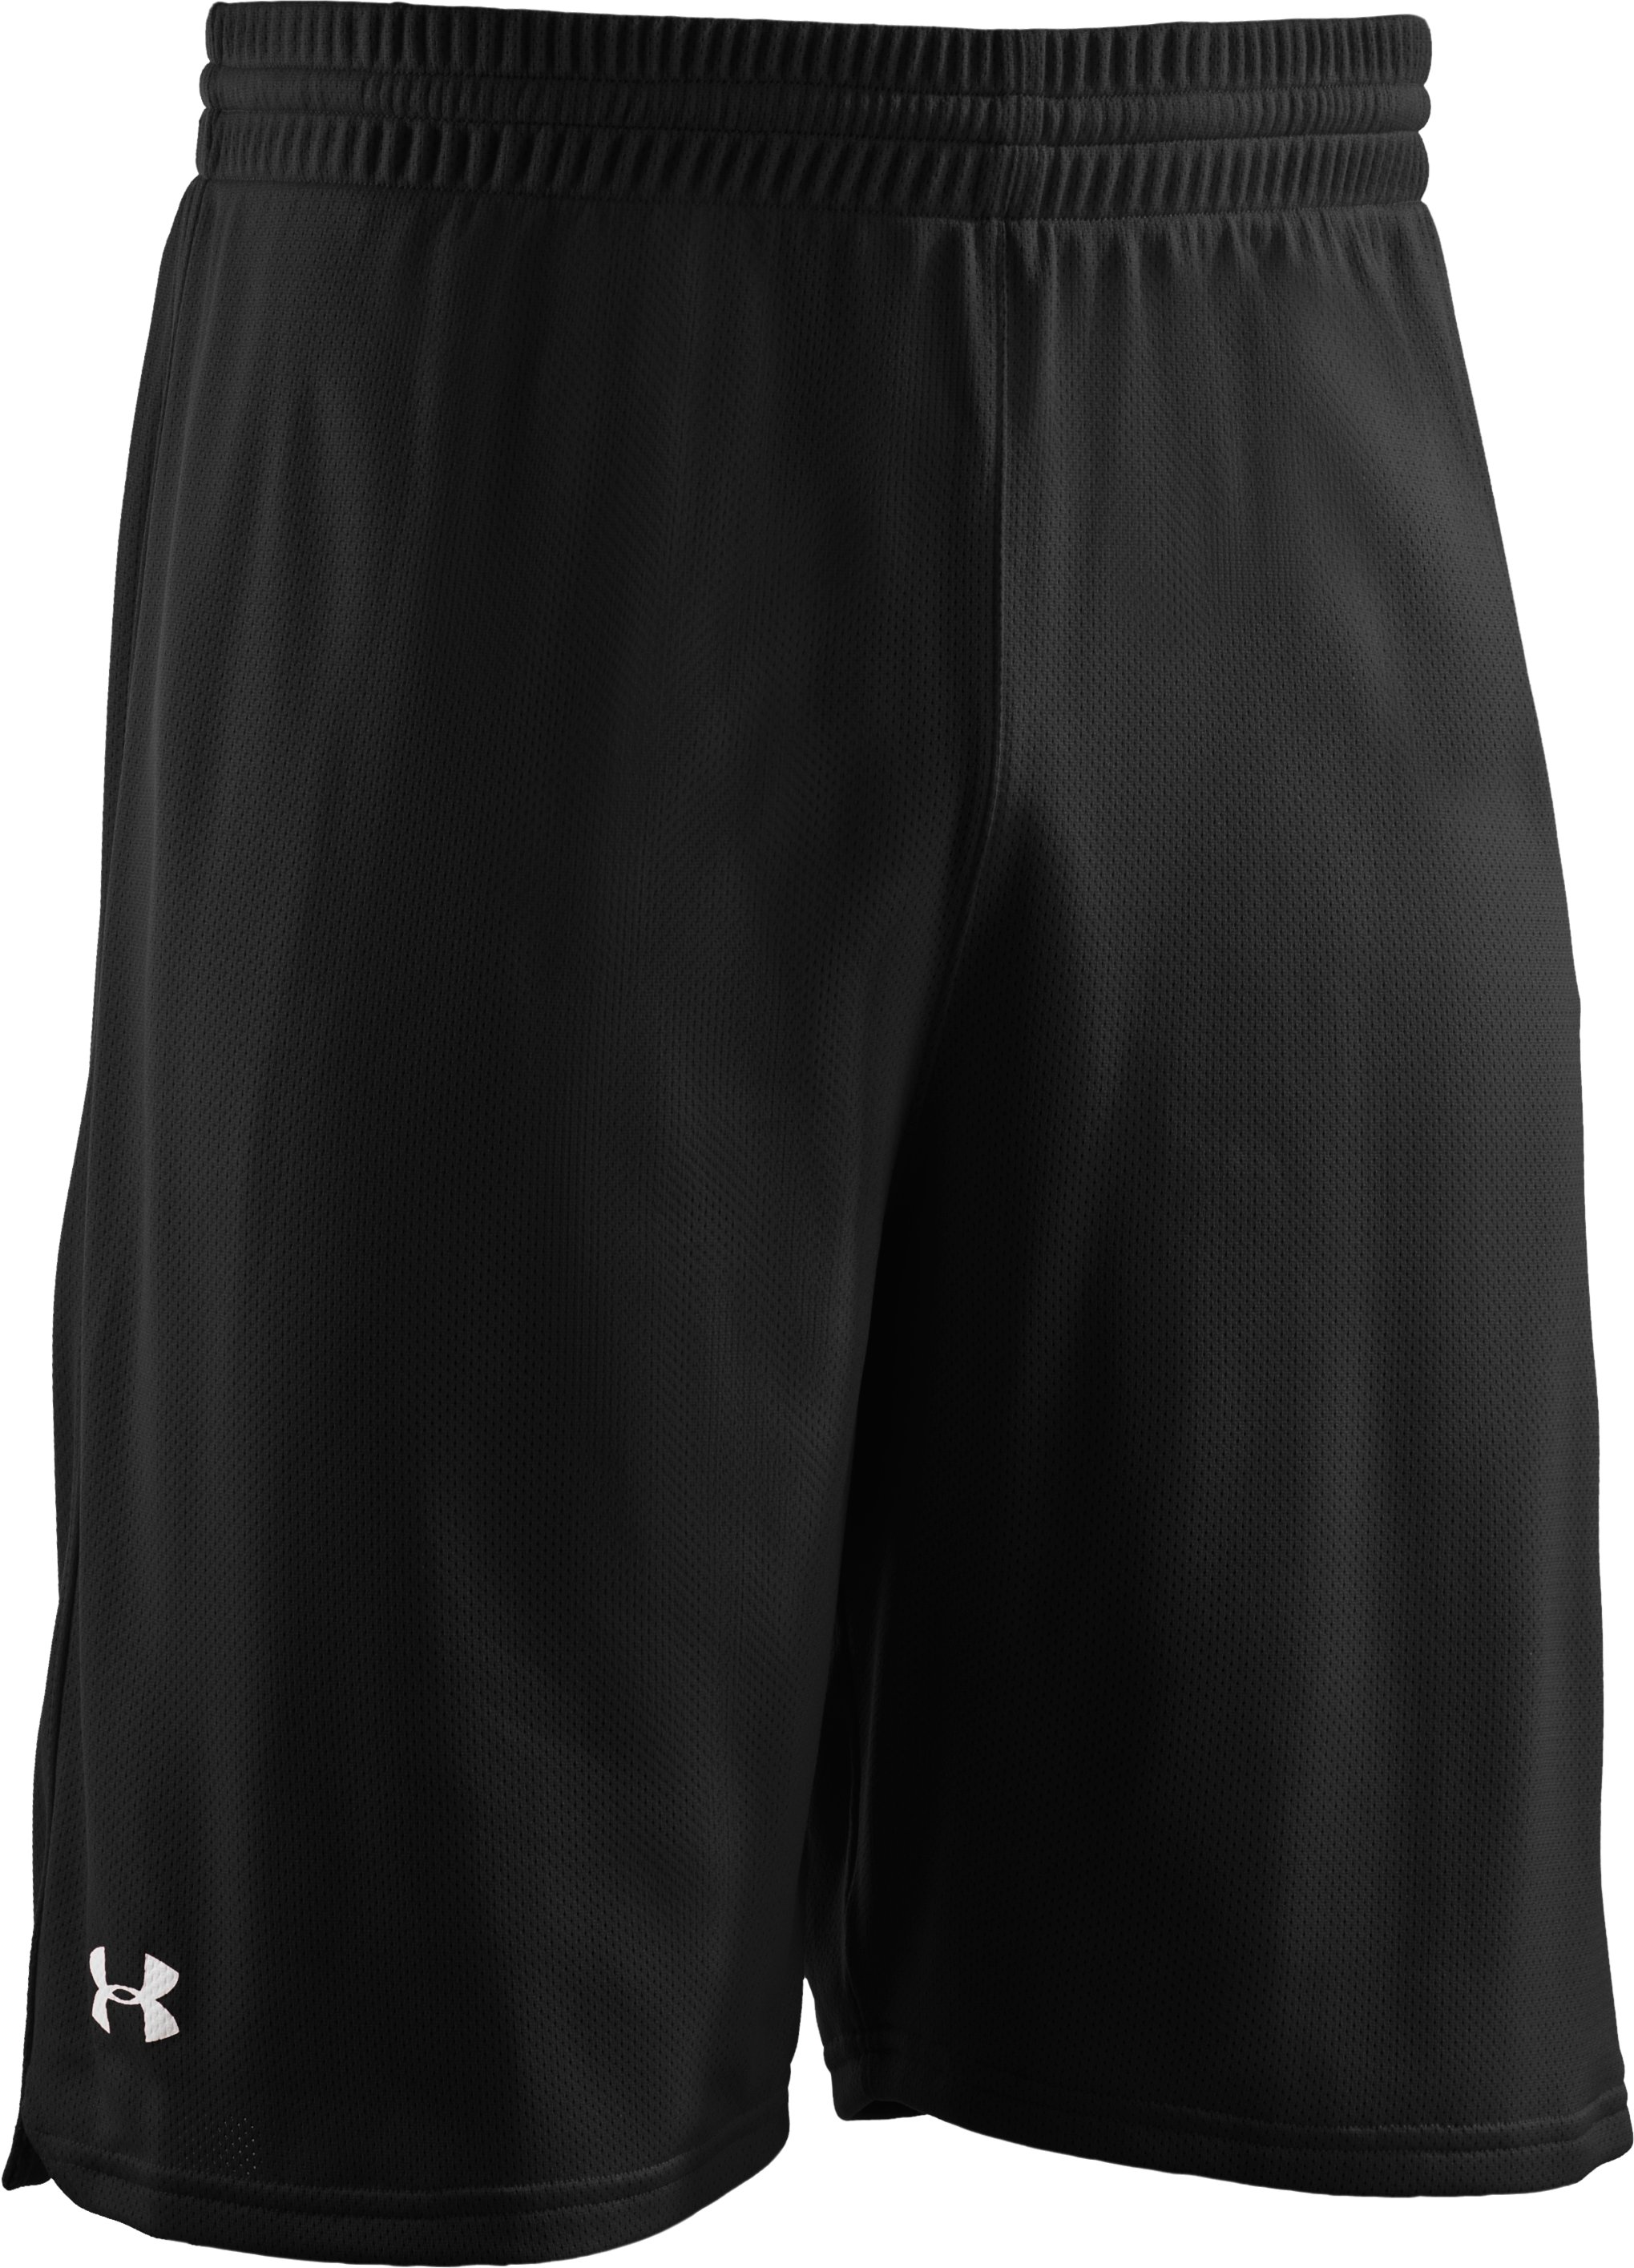 "Men's Dominate 10"" Basketball Shorts, Black"